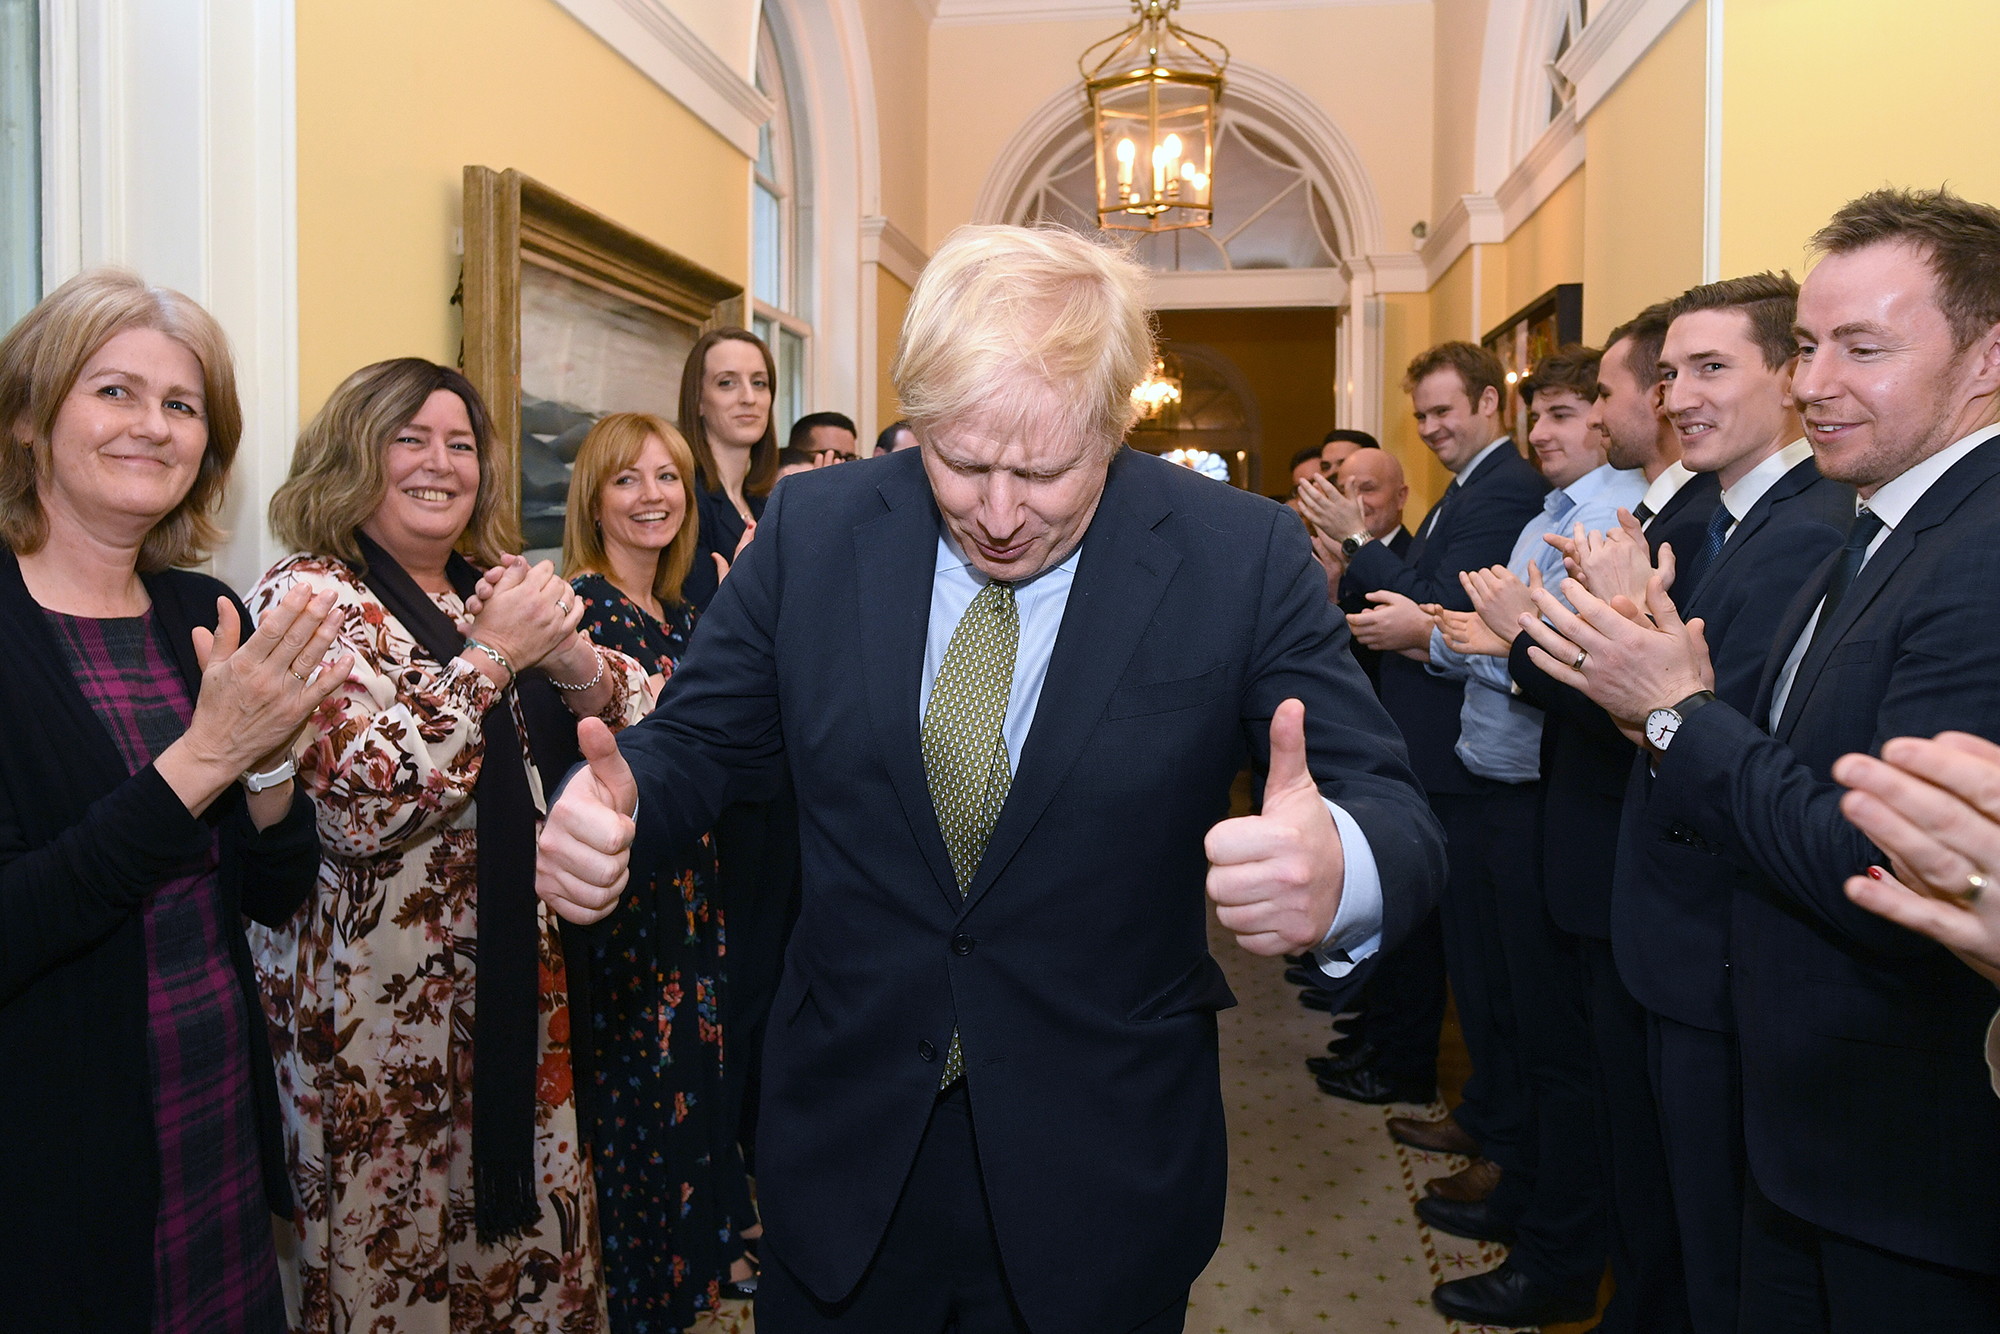 Should Boris Johnson's landslide win make 2020 Democrats nervous?